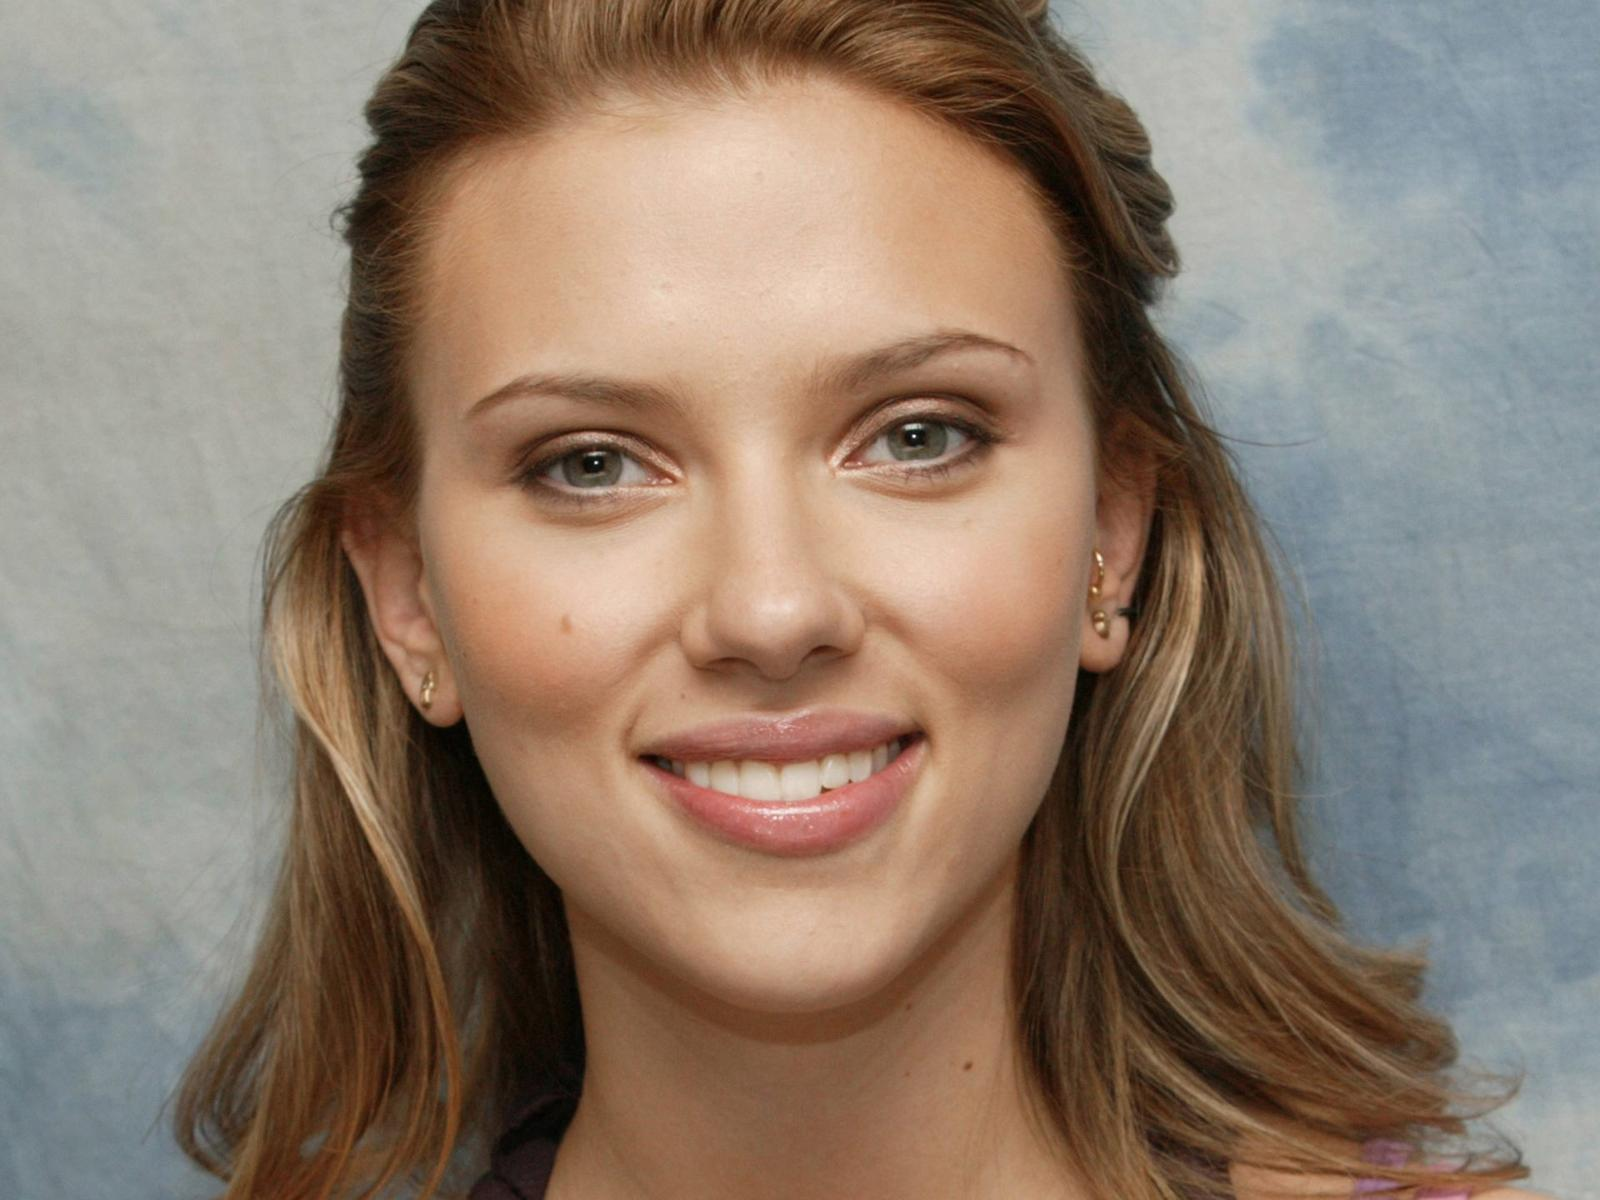 Scarlett Johansson Wallpaper: Scarlett Johansson-Beautiful Eyes Wallpaper